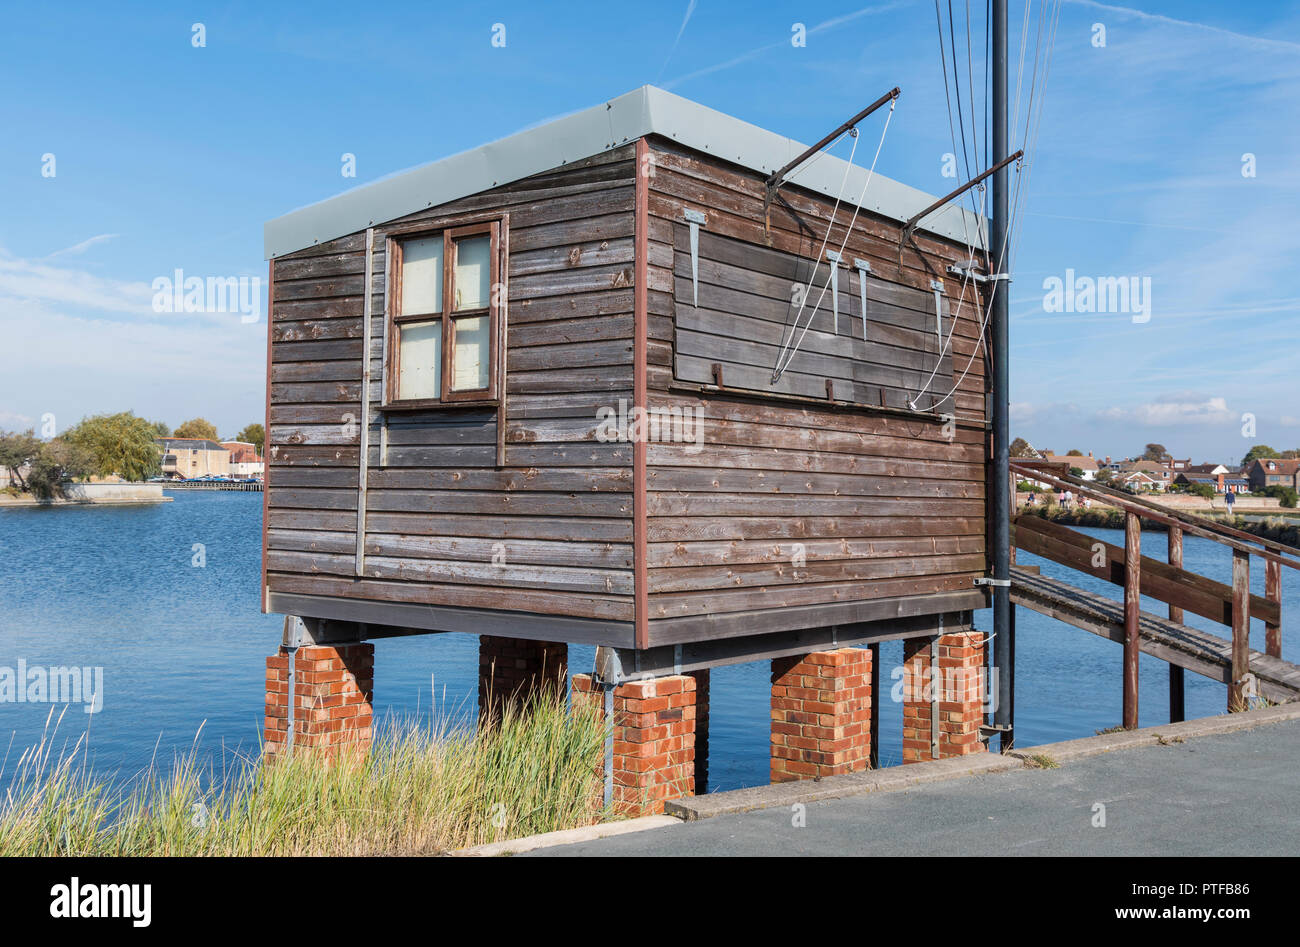 Sailing club boat race hut, a wooden hut on brick pillars in Slipper Mill Pond in Emsworth, Hampshire, England, UK. - Stock Image